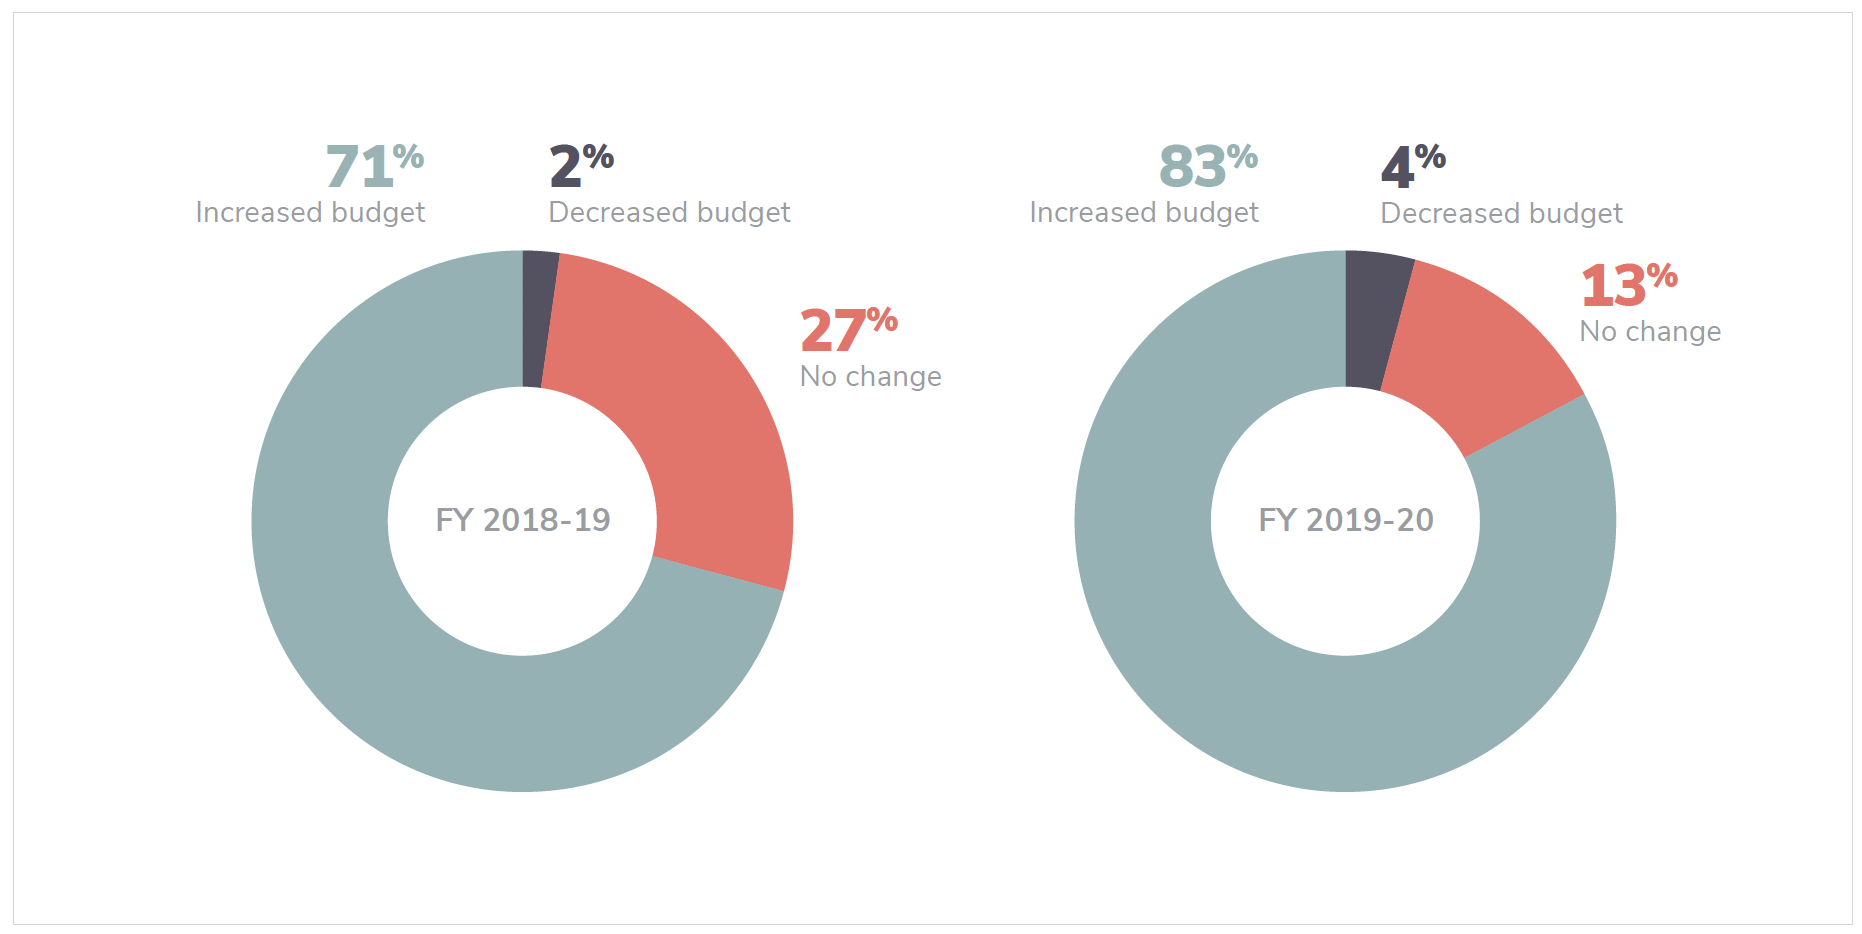 83% of organizations have increased AI/ML budgets year-on-year